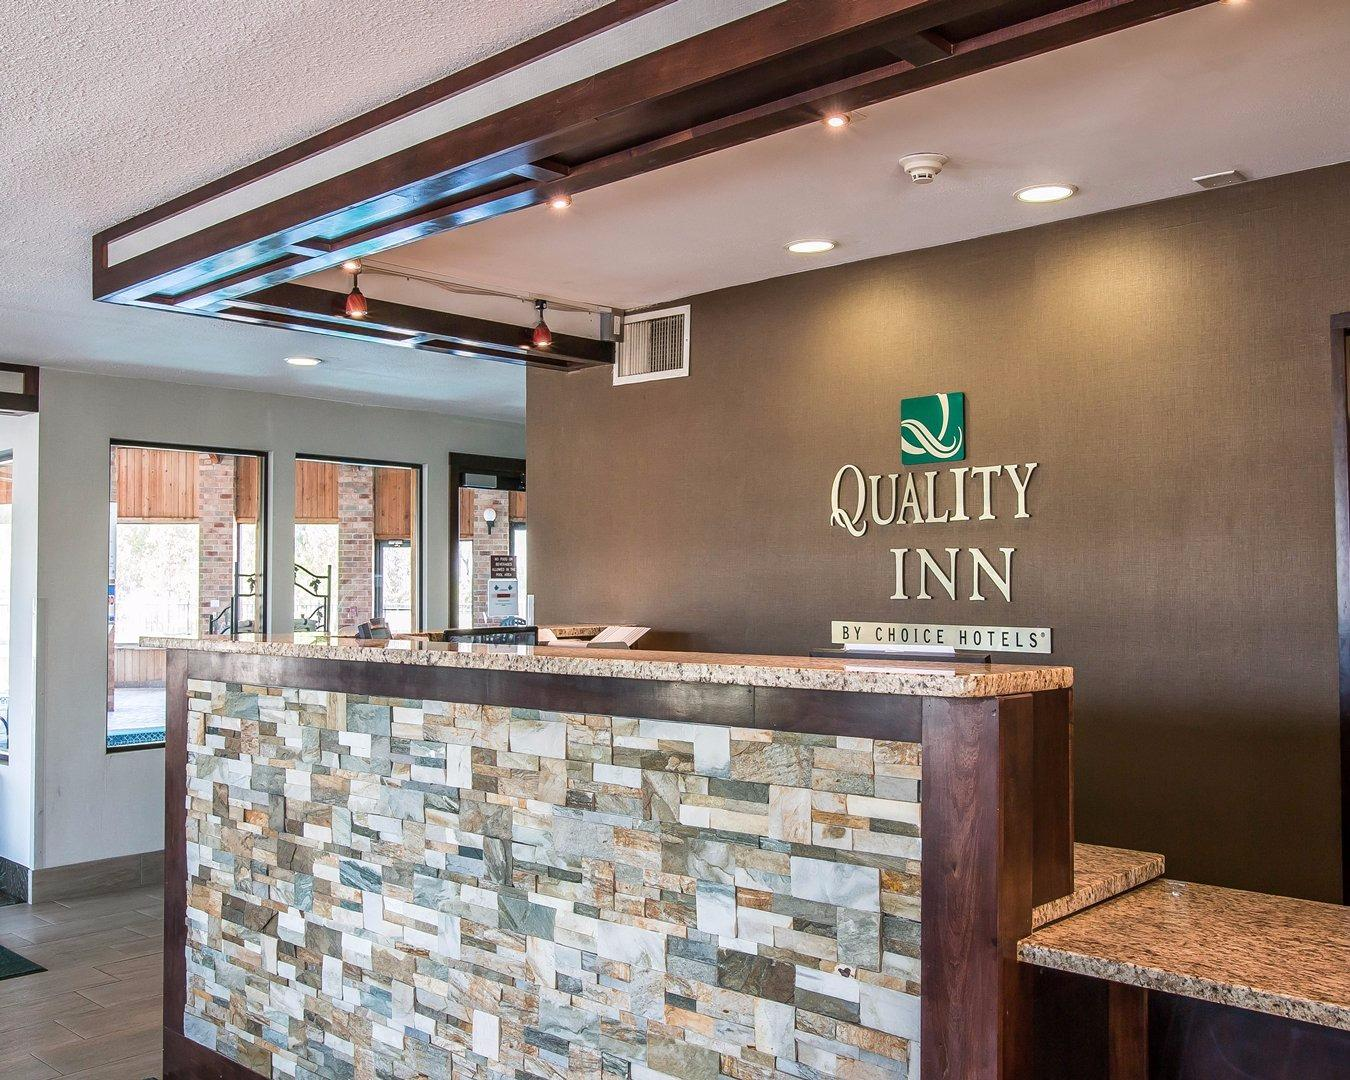 Quality Inn, Grand Rapids MI